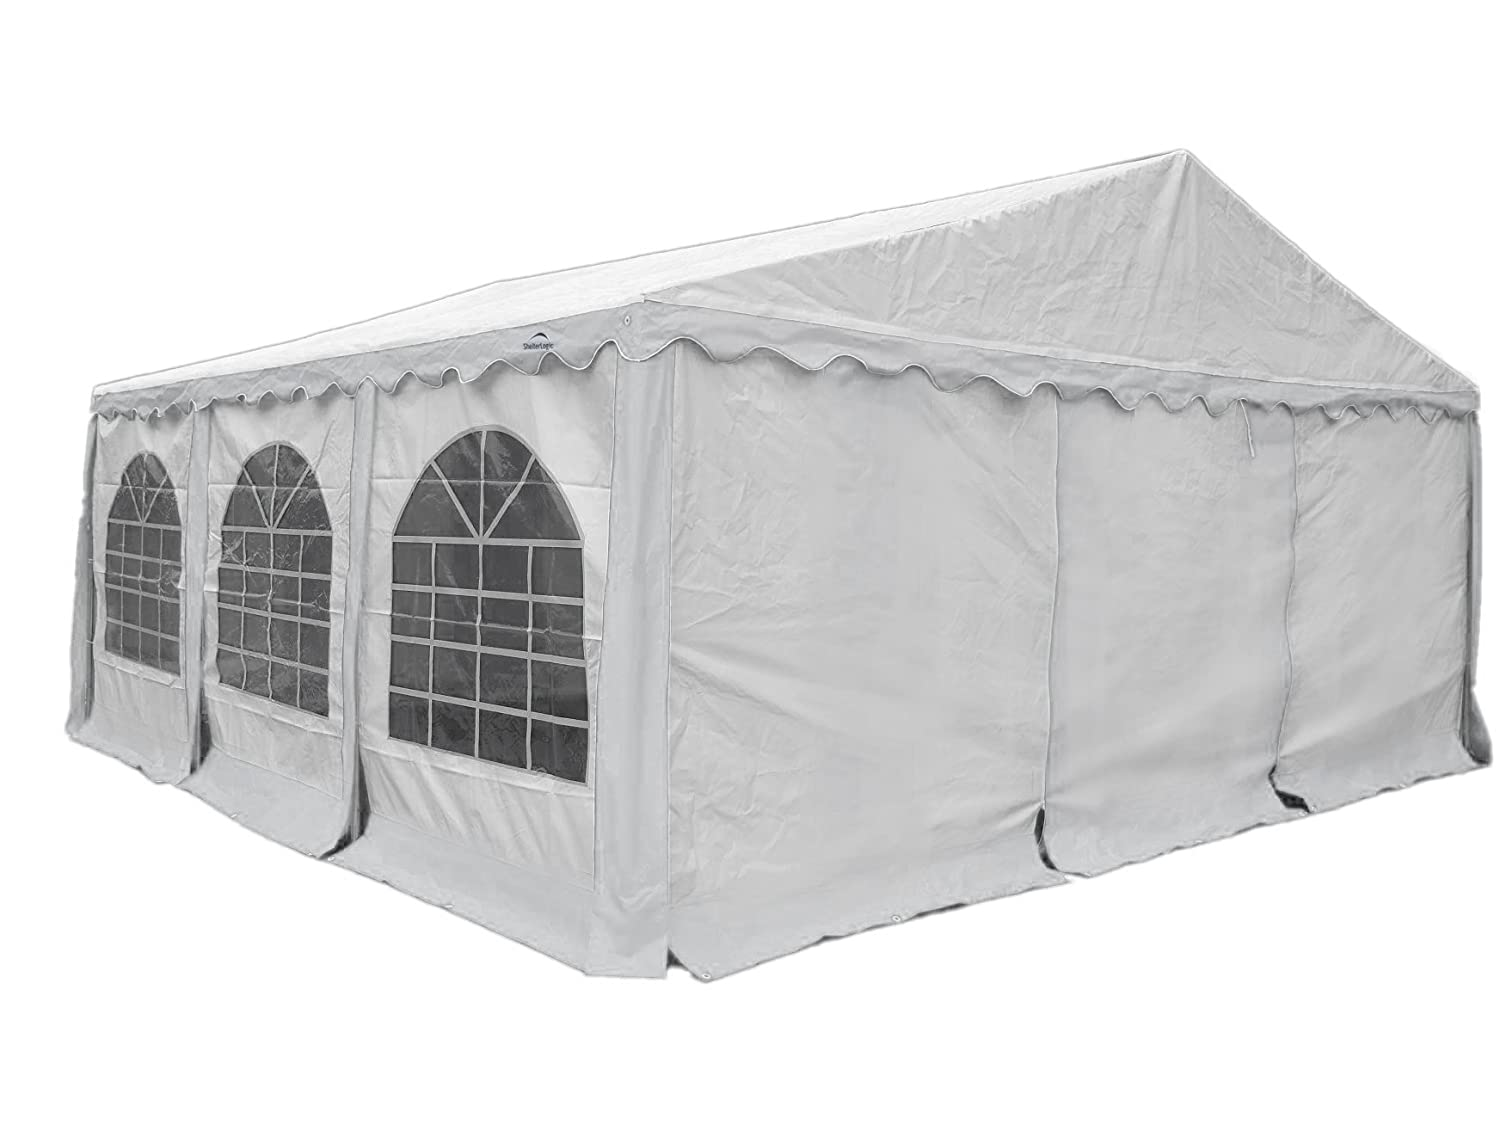 Amazon.com  ShelterLogic 25927 Enclosure Kit with Windows for Party Tent 20x20 ft / 6x6 m White (Frame and cover Not included)  Garden u0026 Outdoor  sc 1 st  Amazon.com & Amazon.com : ShelterLogic 25927 Enclosure Kit with Windows for ...